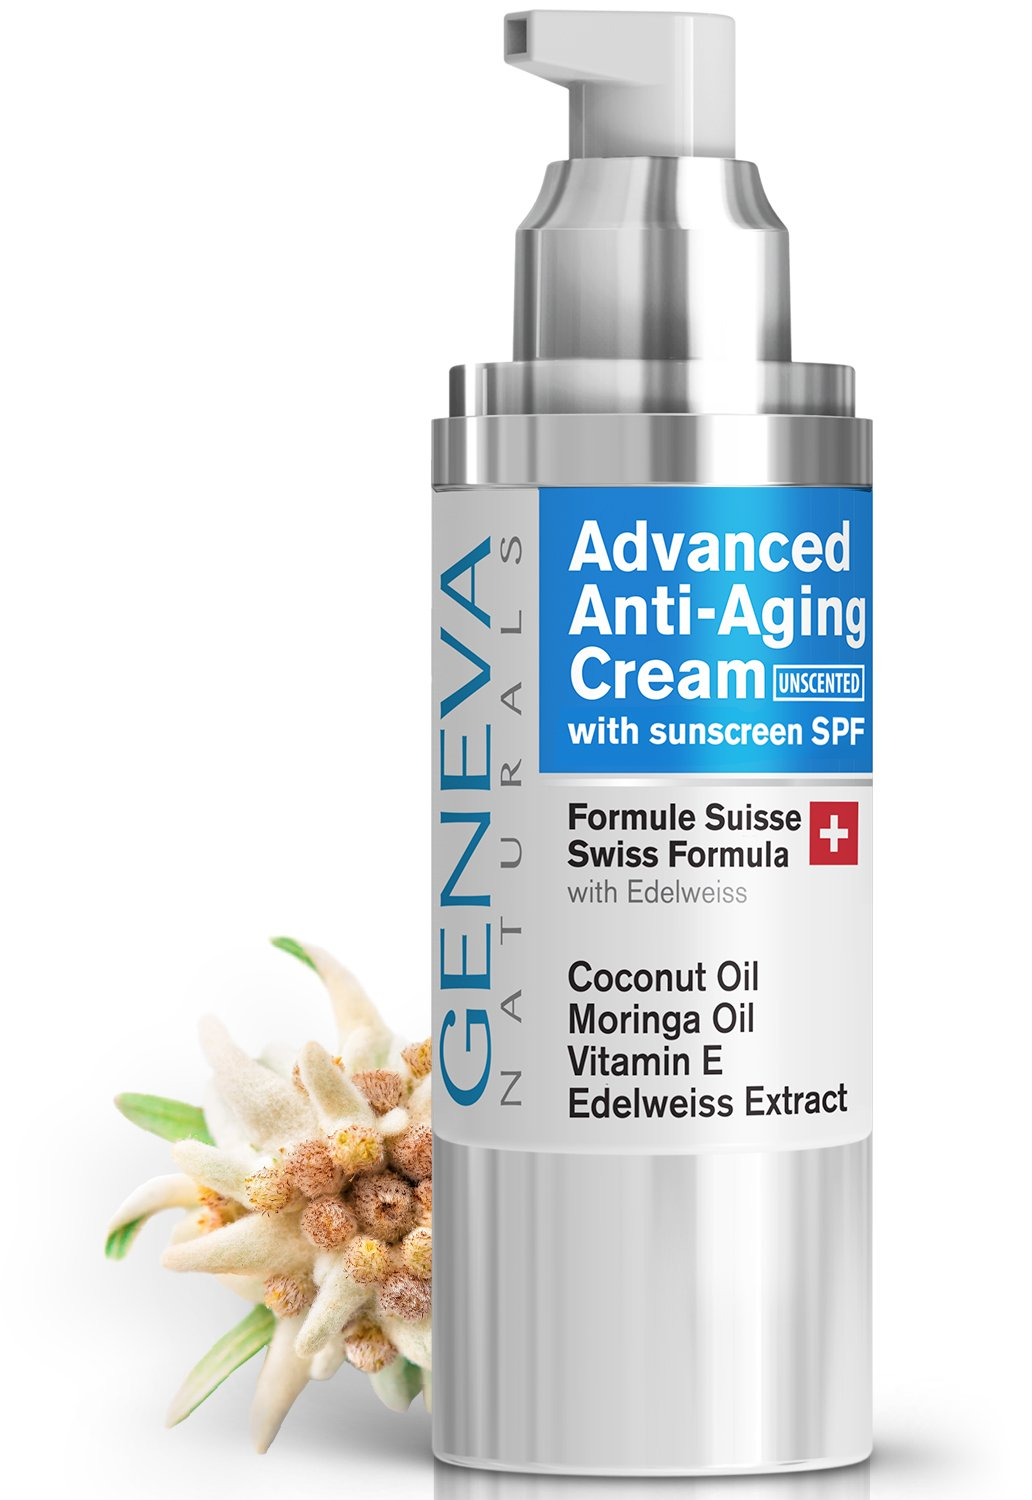 Facial Moisturizer with SPF (Unscented) - Natural Swiss Anti-Aging Formula SPF 20 Features Coconut Oil, Vitamin E, Edelweiss Extract With Everyday Sun Protection for Men & Women - 1oz